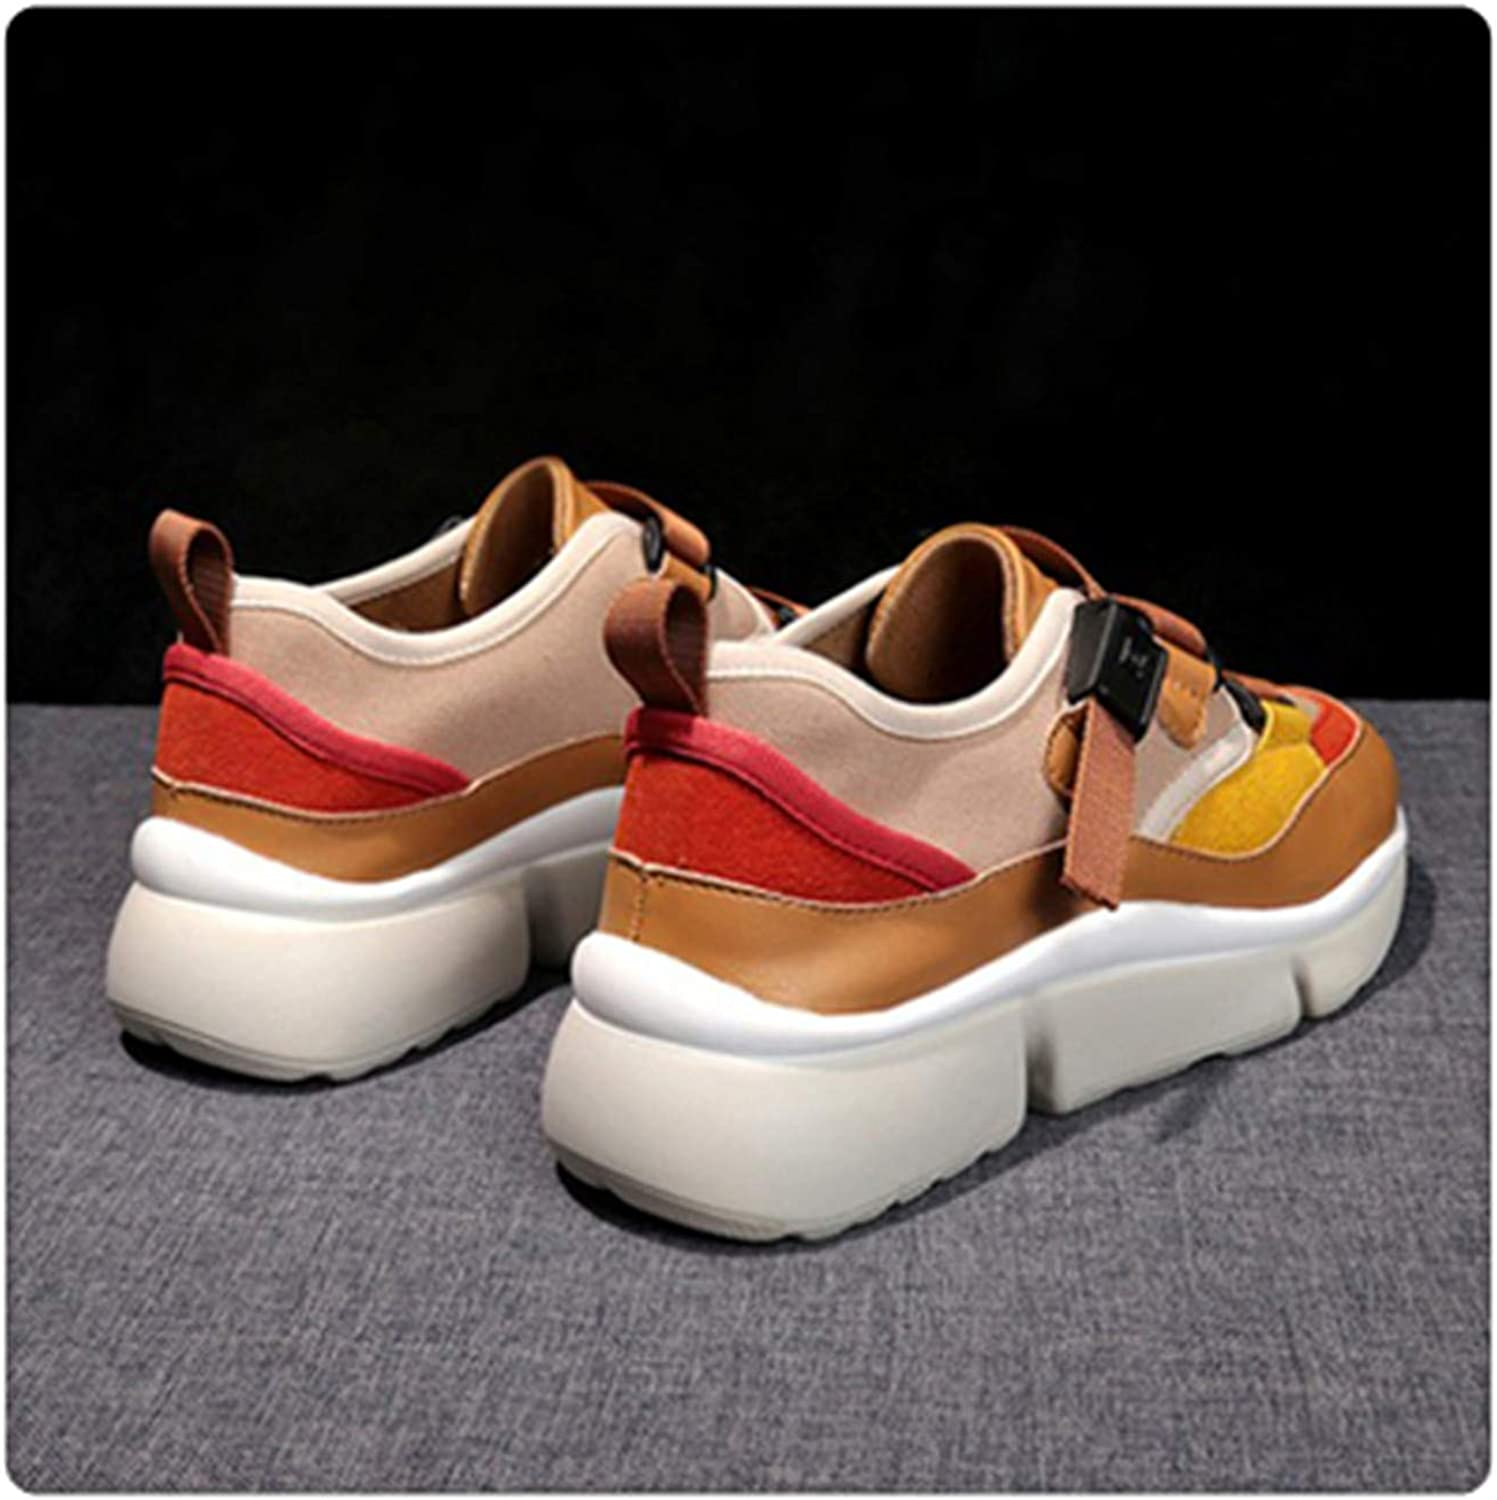 Uciquzhon Fashion Women Canvas shoes 2019 Student Board Casual Sneakers 35-39